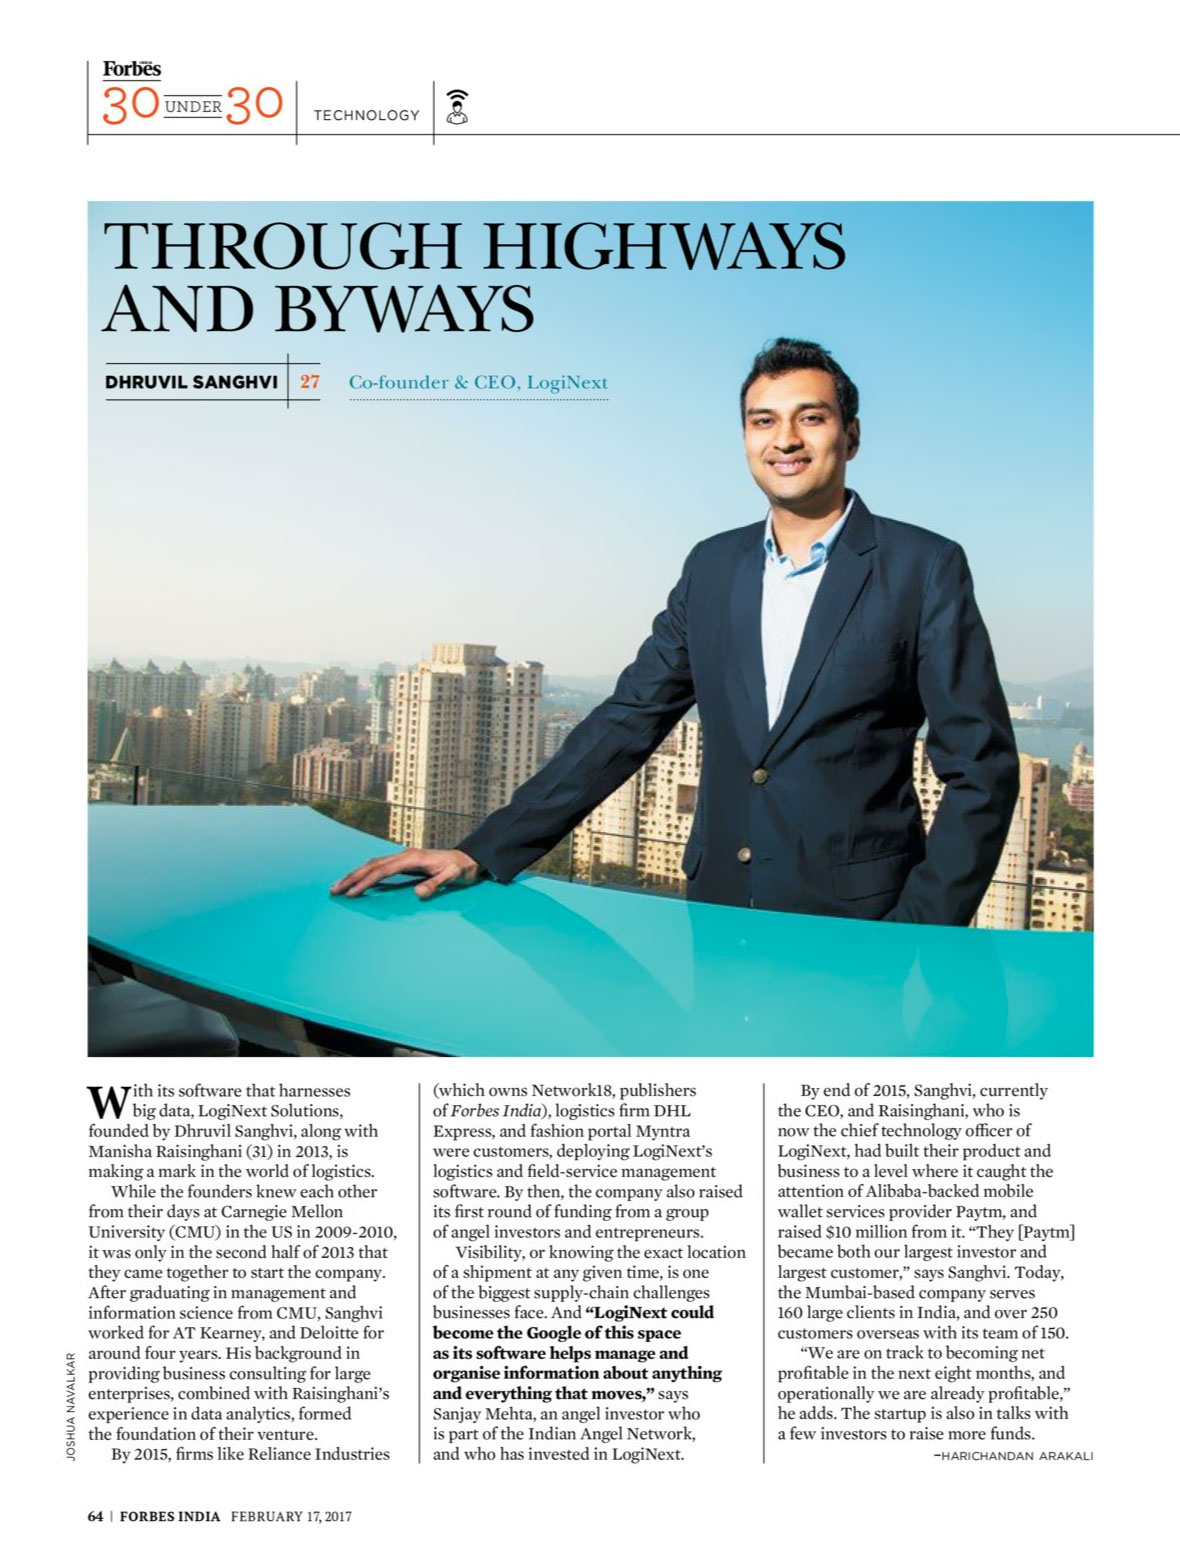 Forbes 30 Under 30 - Dhruvil Sanghvi, CEO, LogiNext